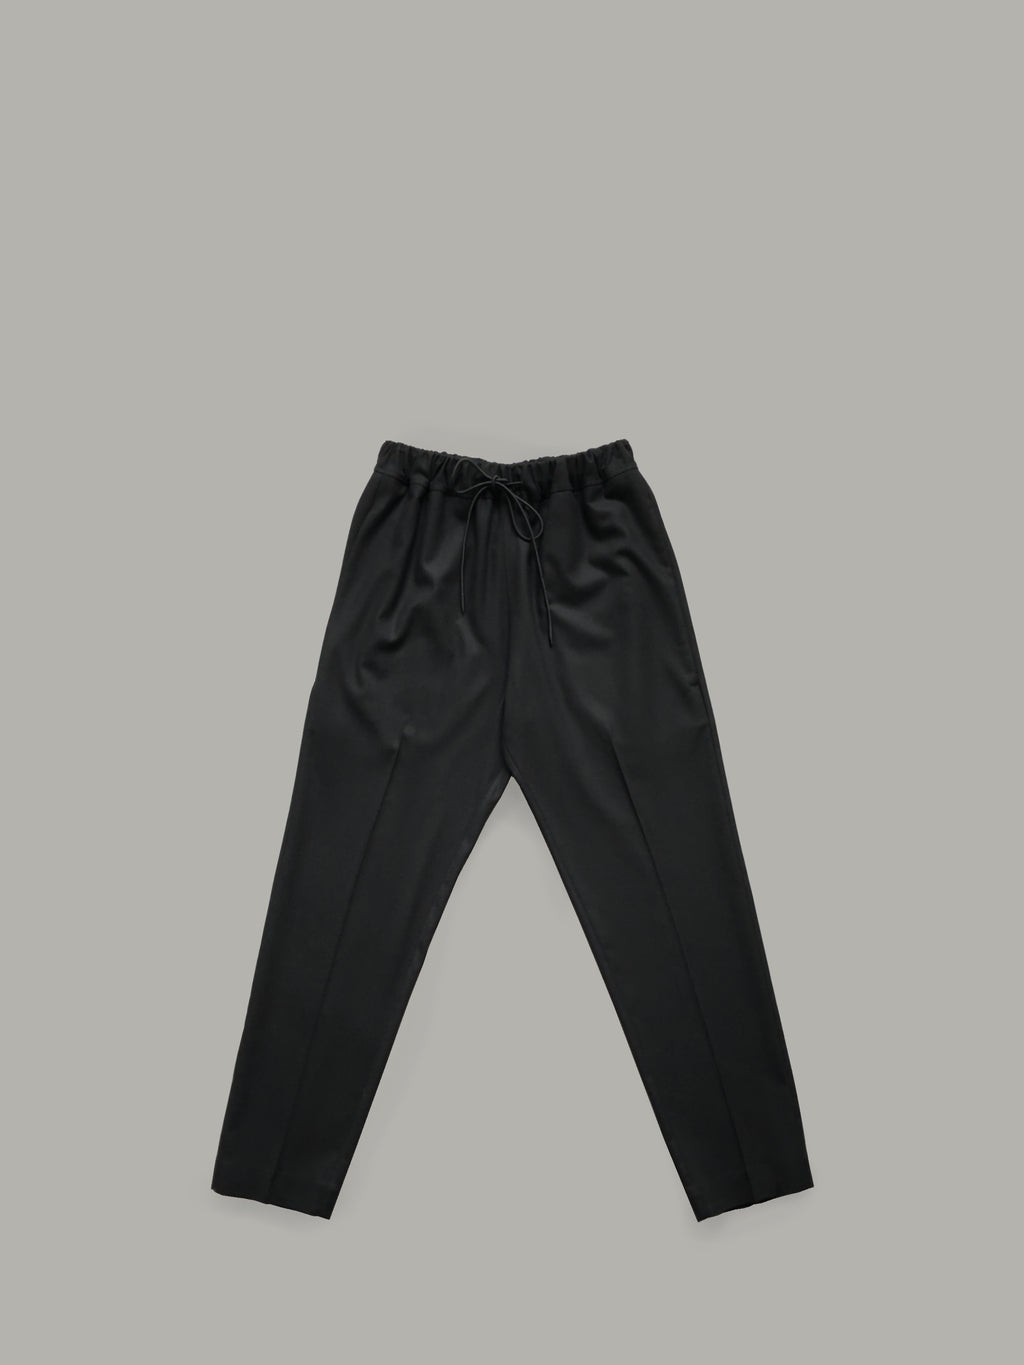 WOOL TROUSERS WITH DRAWSTRING WAISTBAND